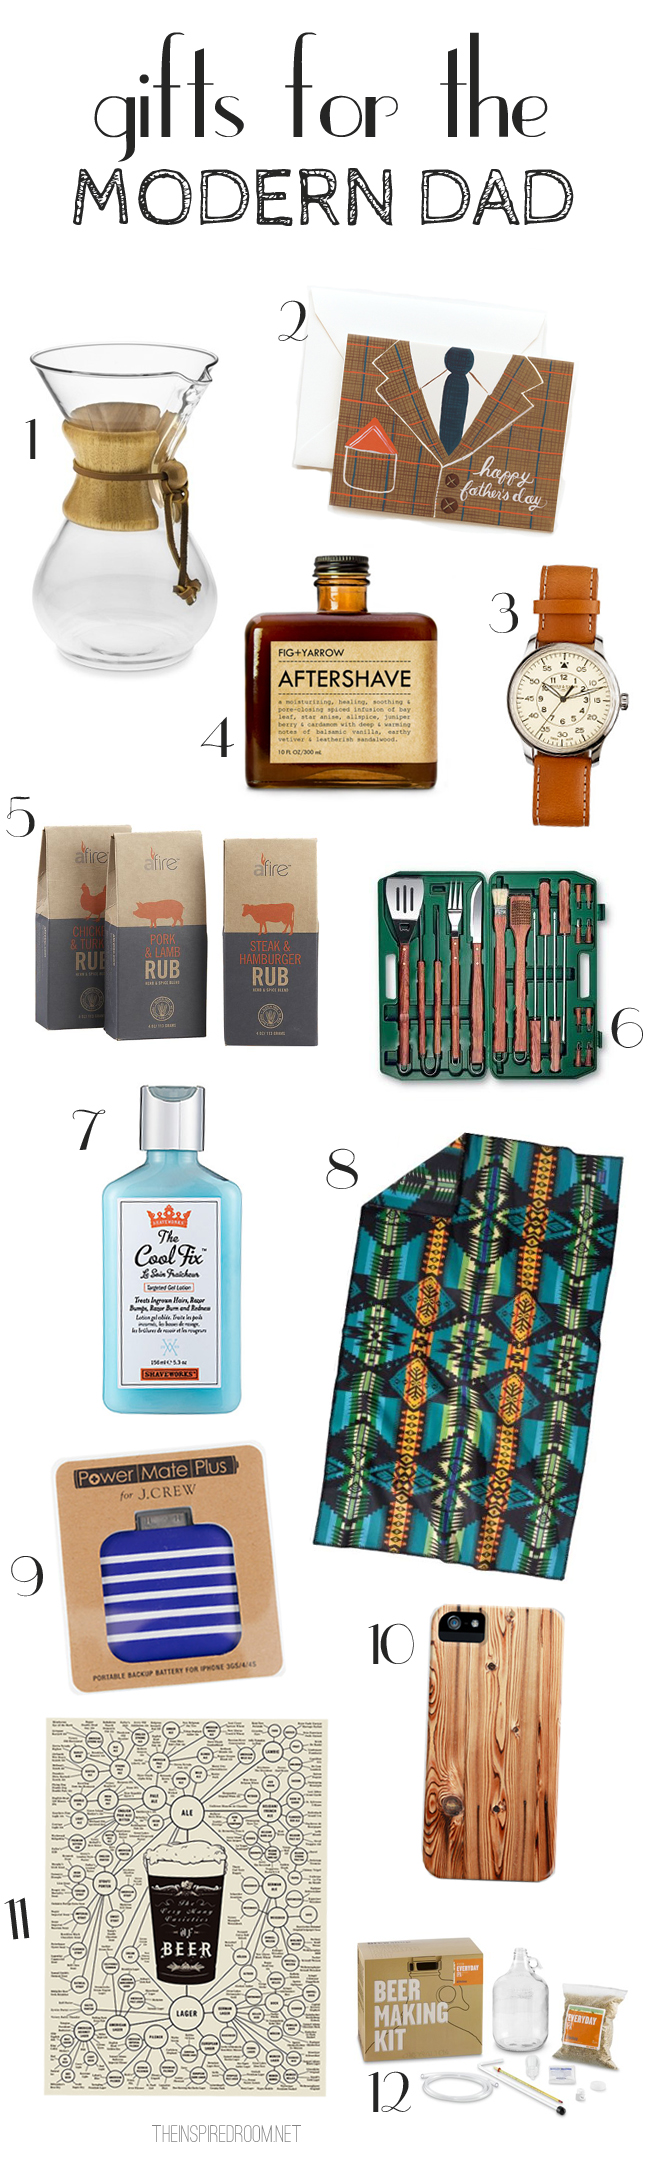 Gifts for Men: Father's Day gifts for the Modern Dad